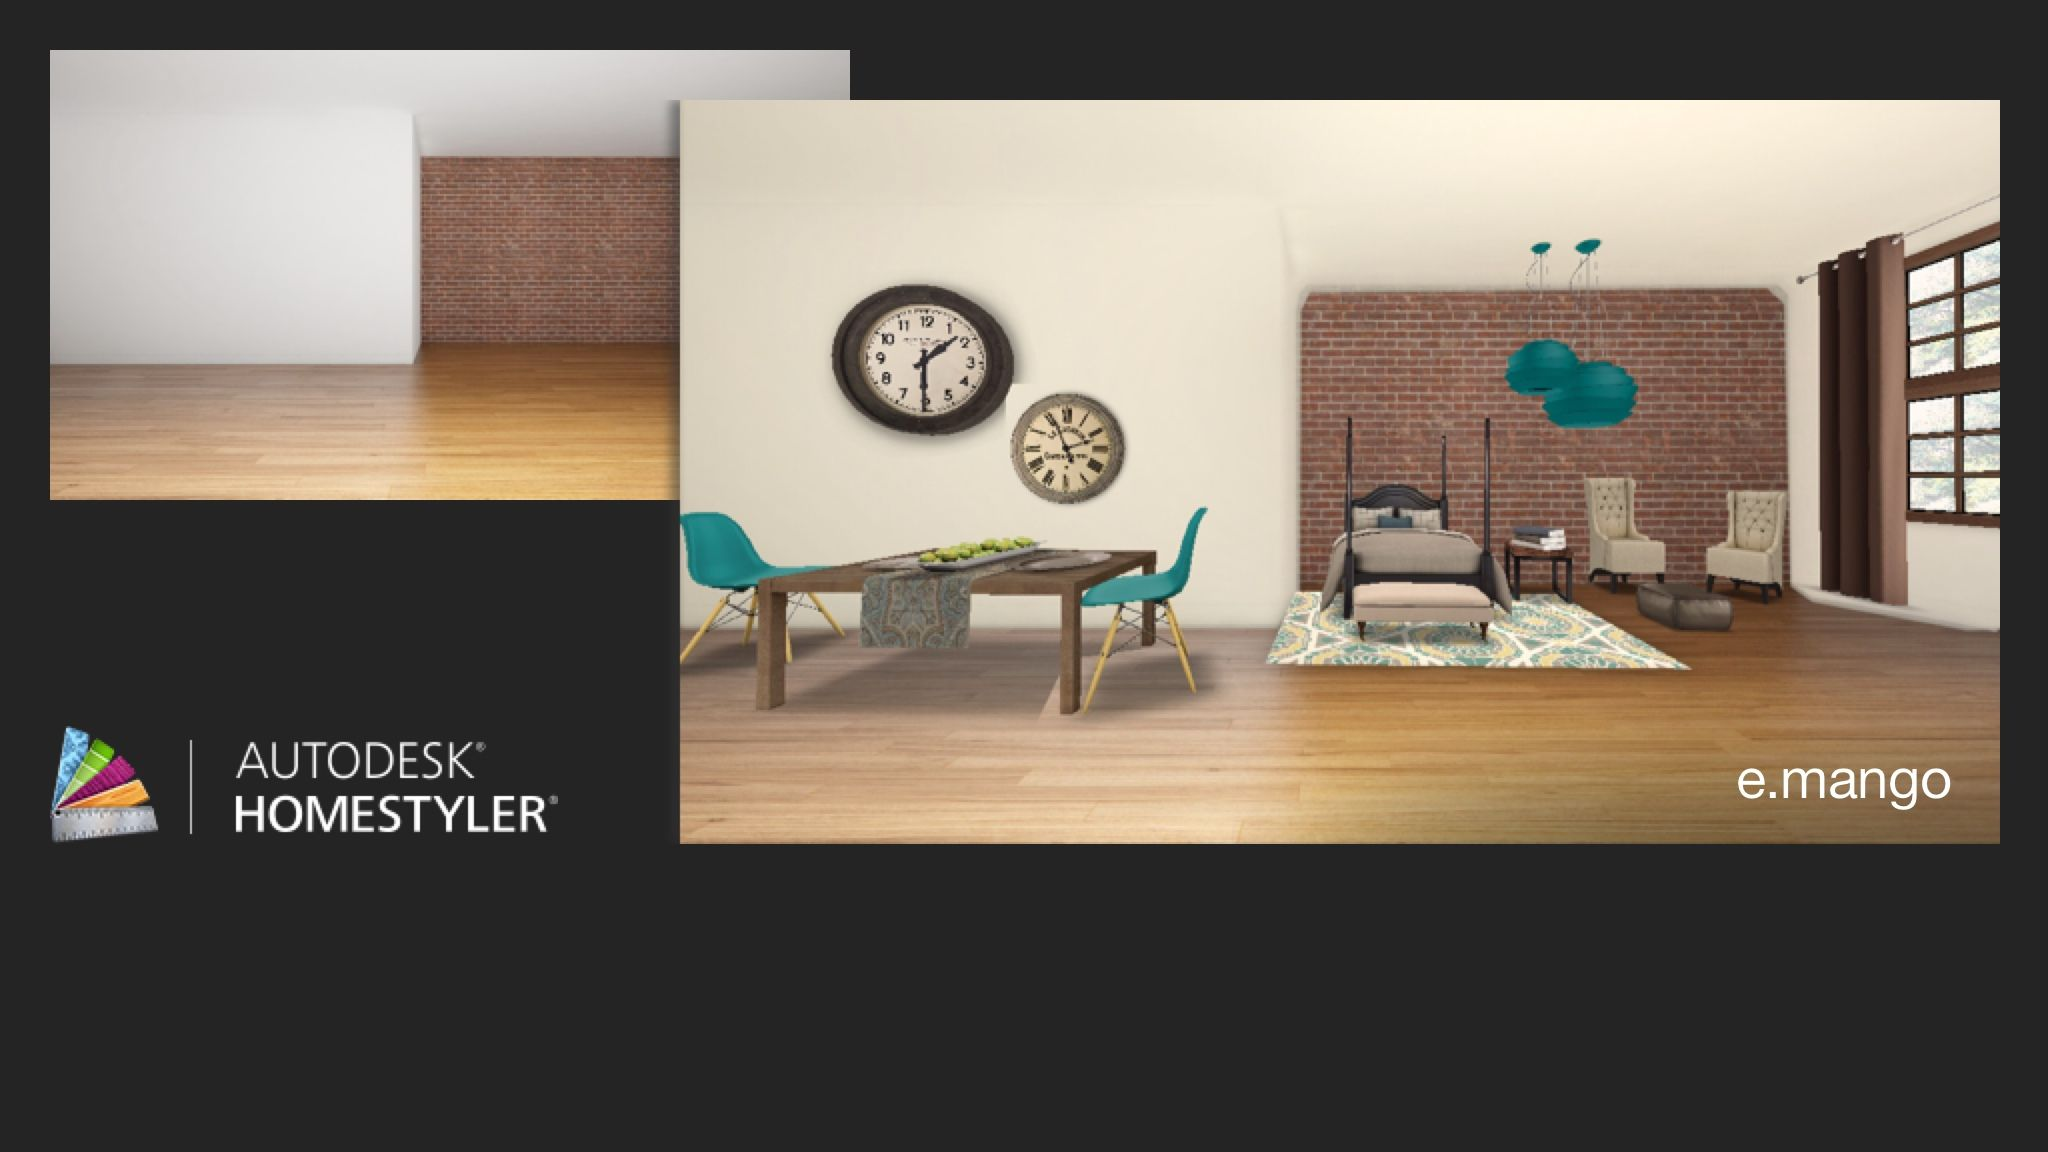 I Made This Apartment On A Game Called Home Styler It Is The Best